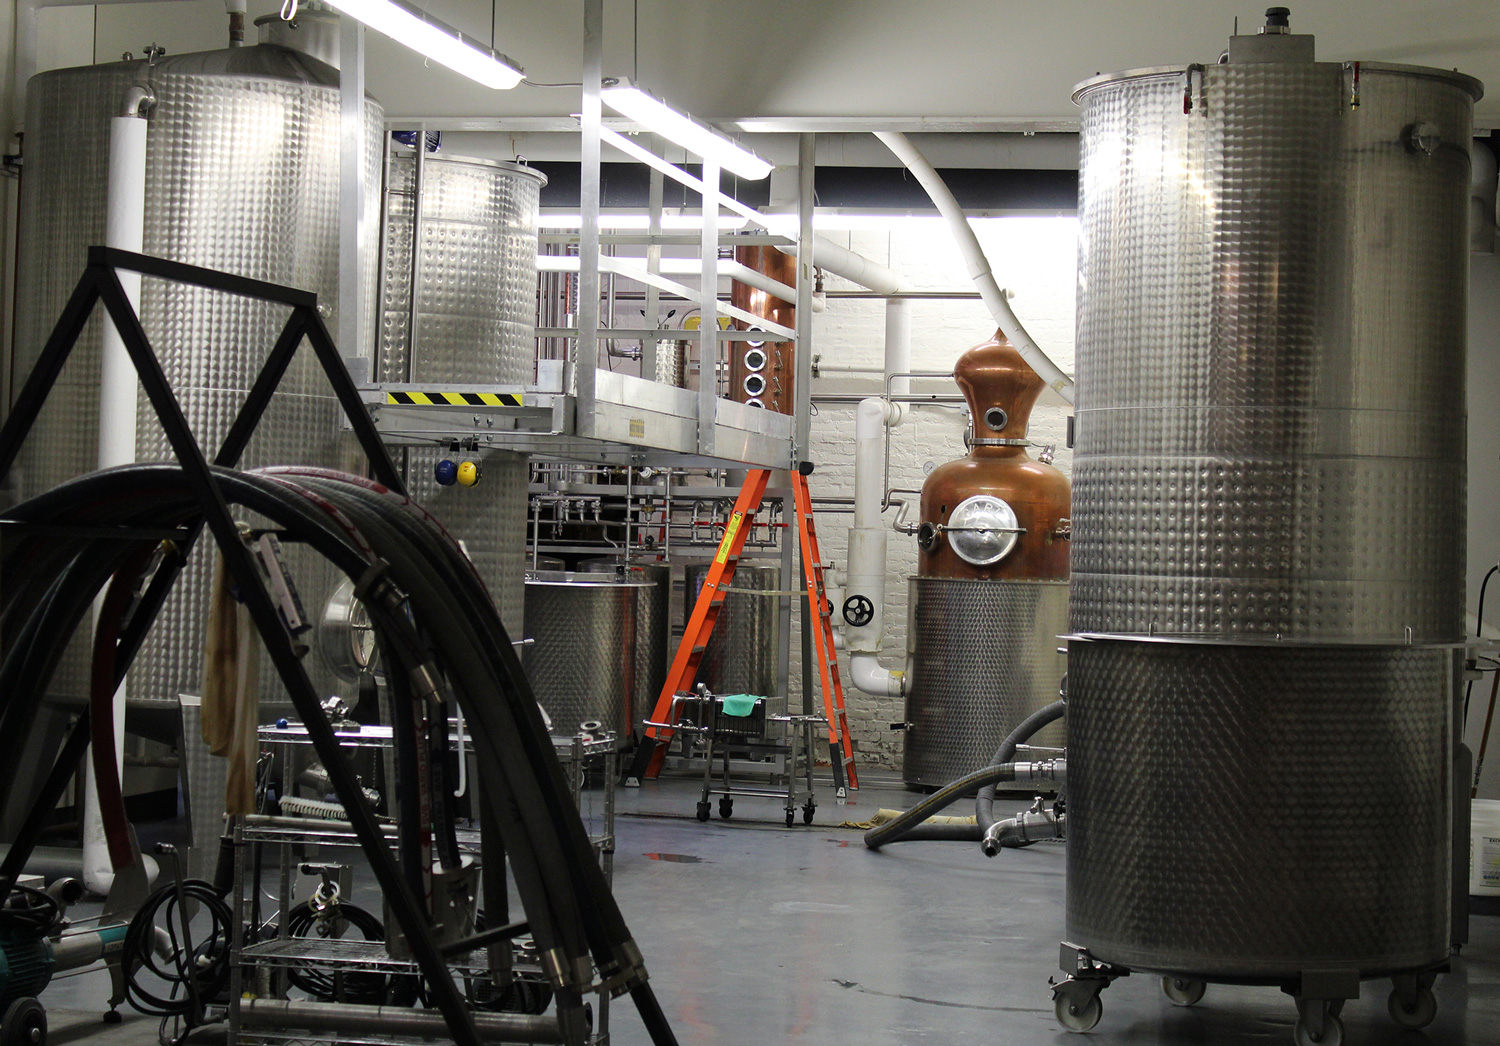 Distilling copper stills